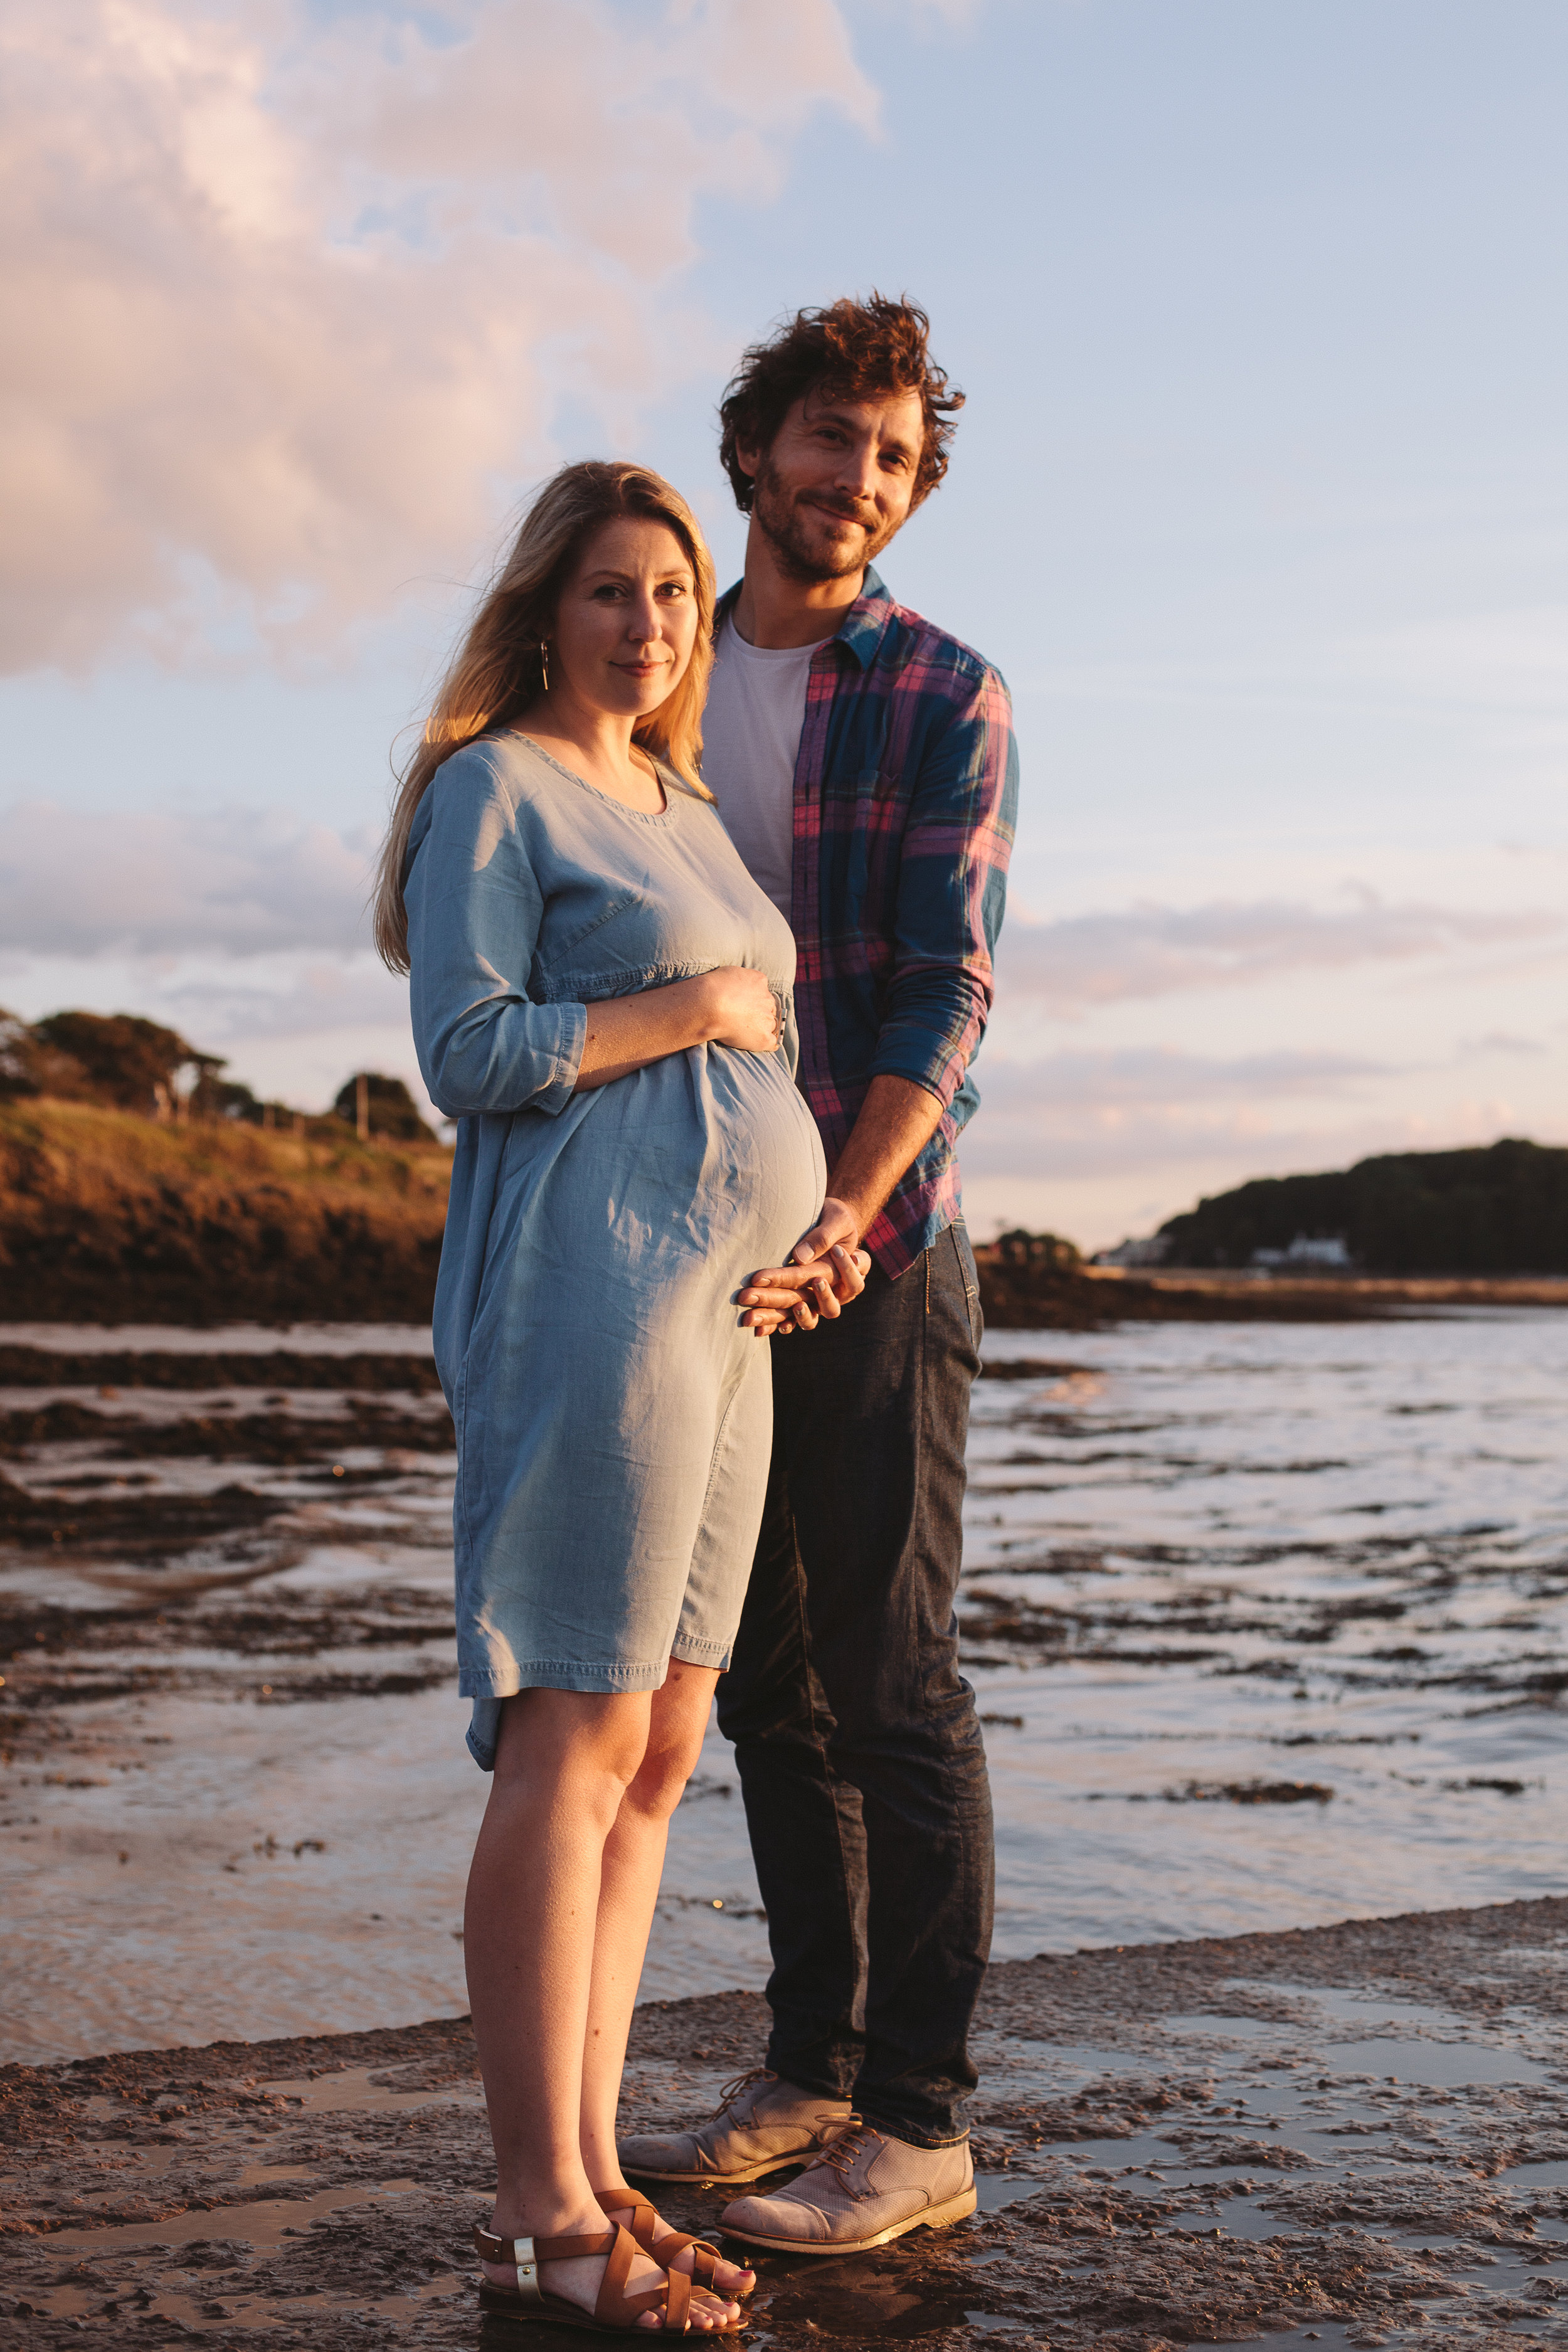 Bristol Natural Maternity photography clevedon Bath pregnancy photo shoot